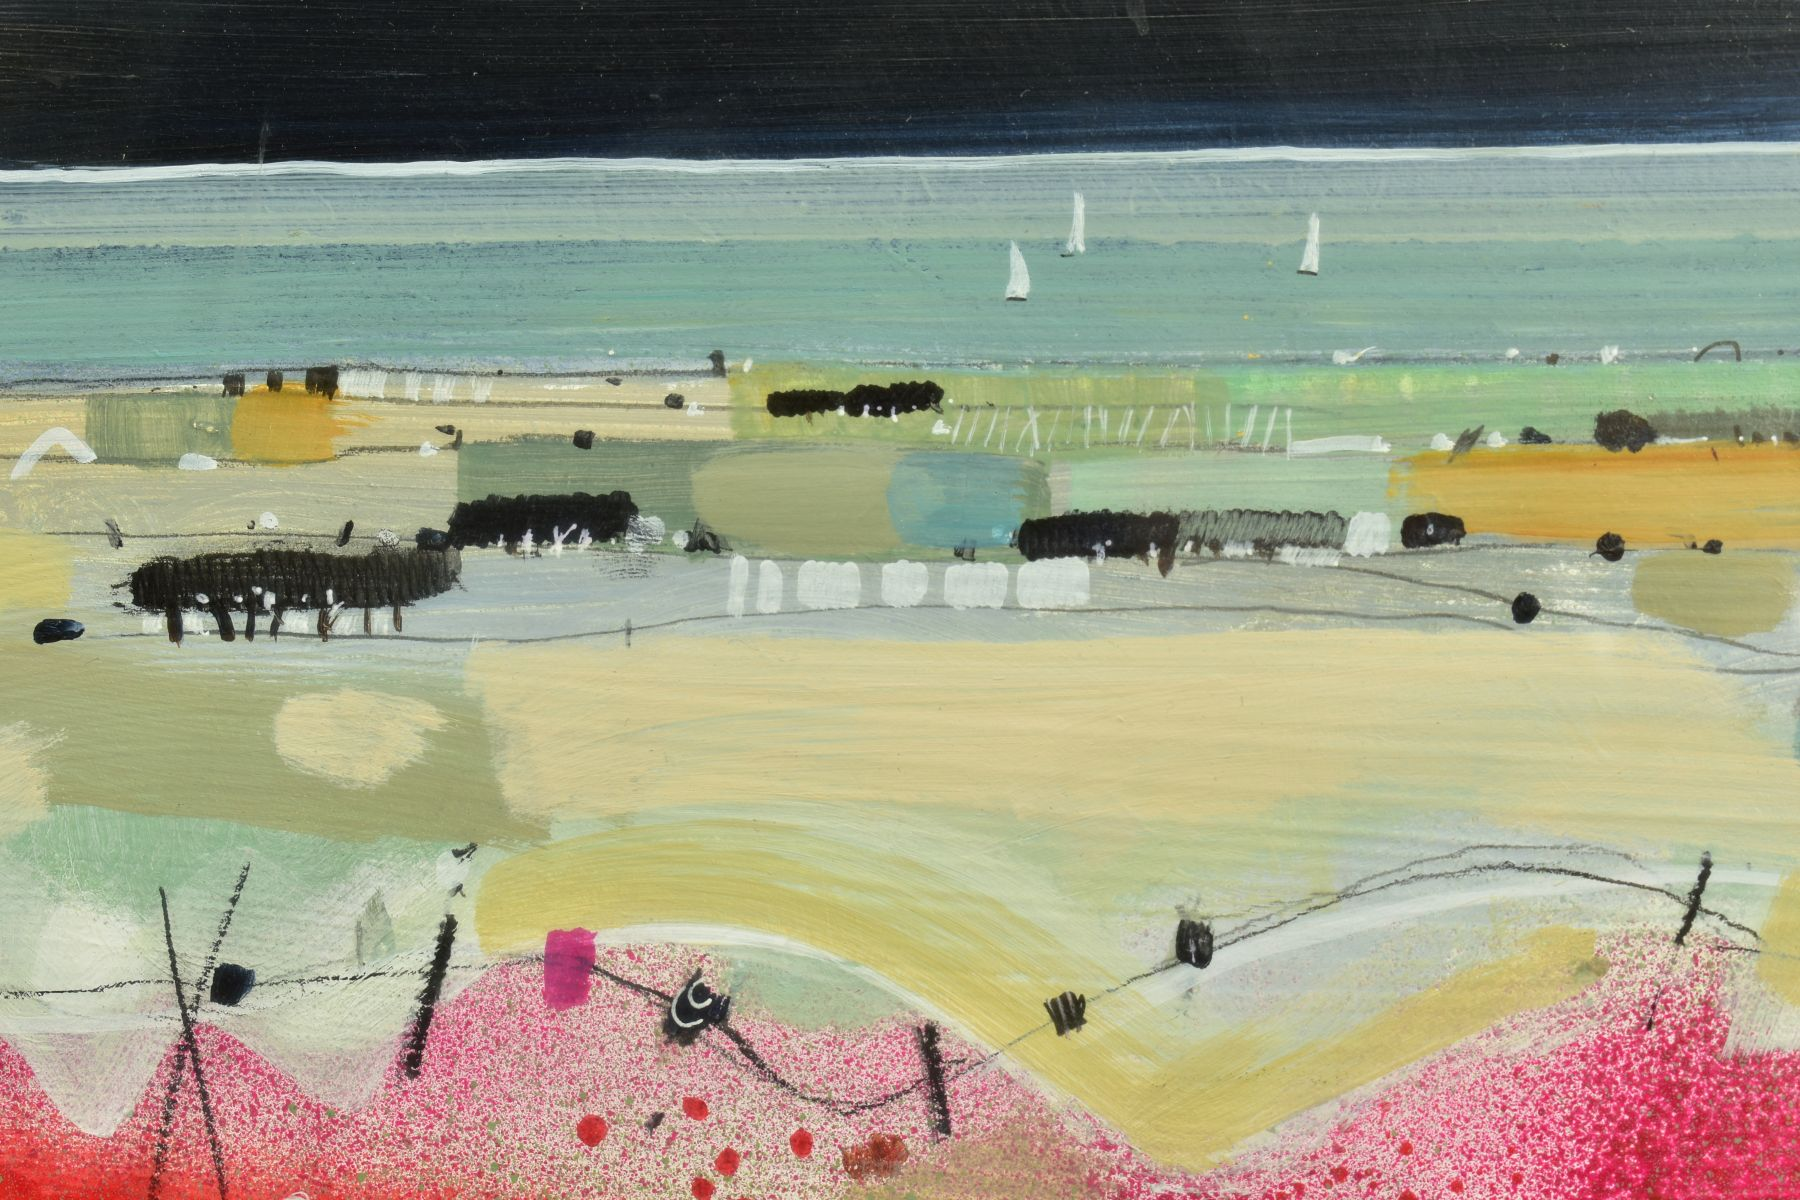 EMMA S. DAVIS (SCOTTISH 1975), 'East Coast Sail', a field of wild flowers, sailing boats beyond, - Image 3 of 7